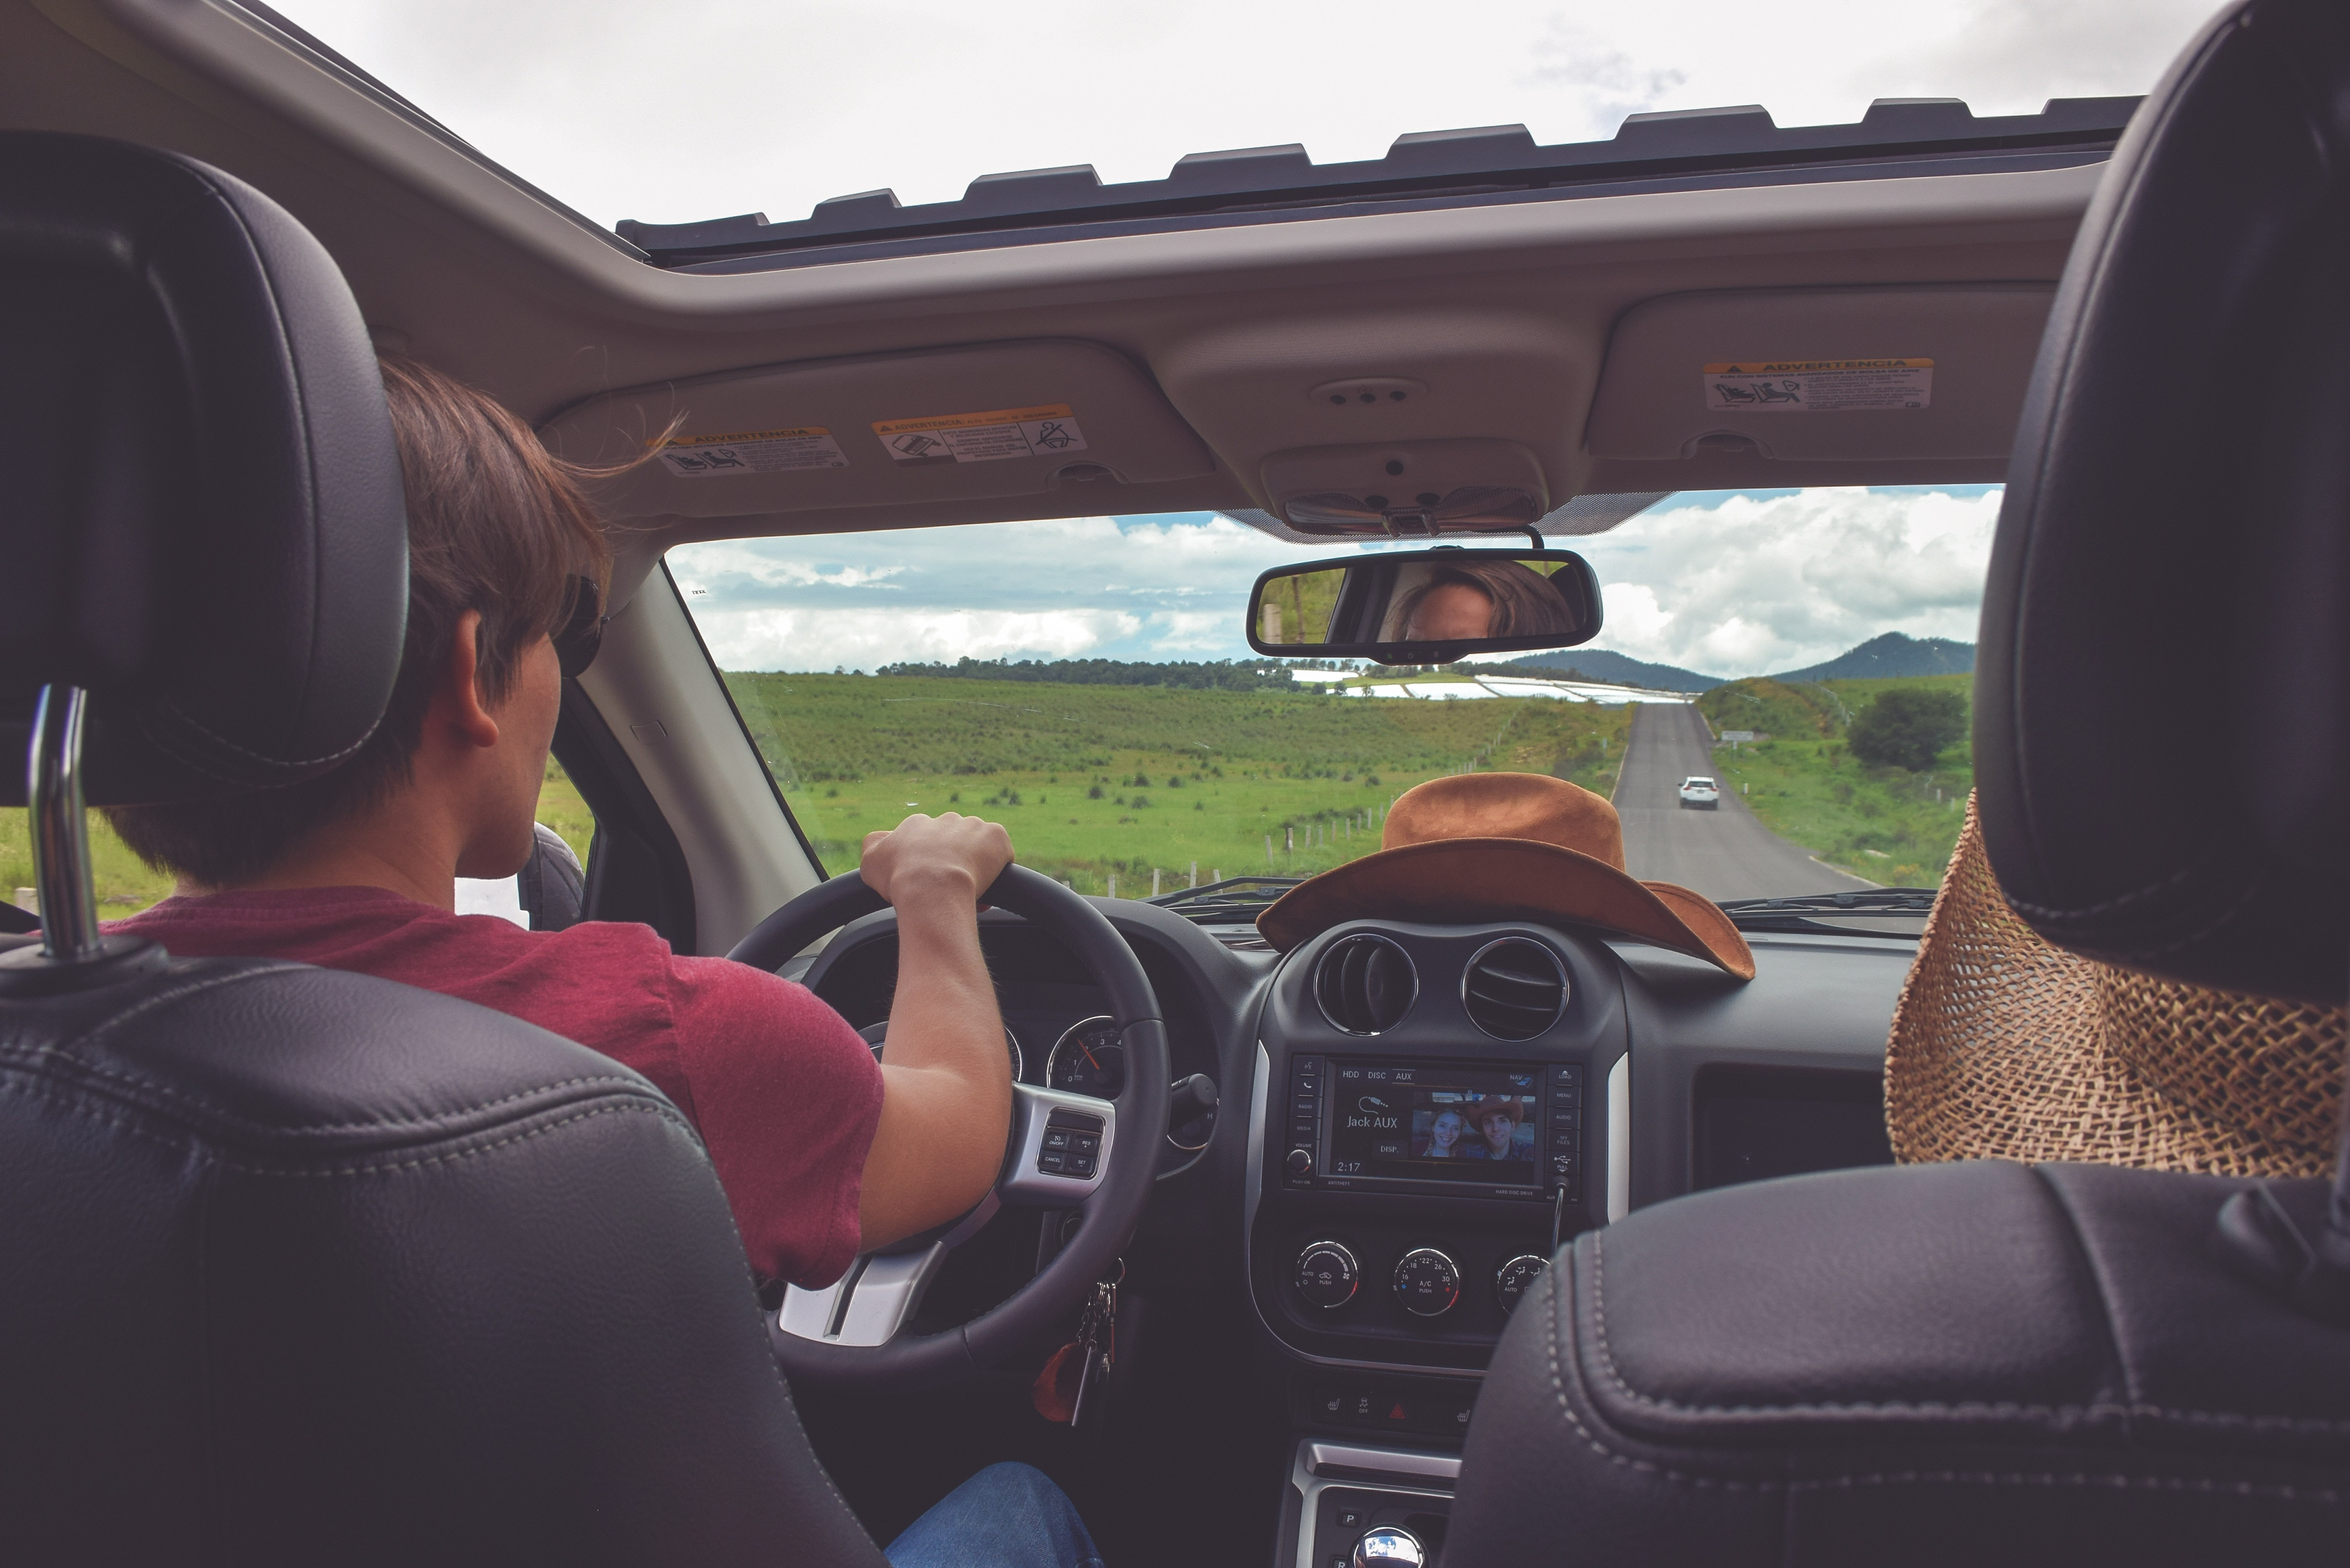 A view from a backseat on the dashboard of a car driven by a young man with rural landscape in front of it